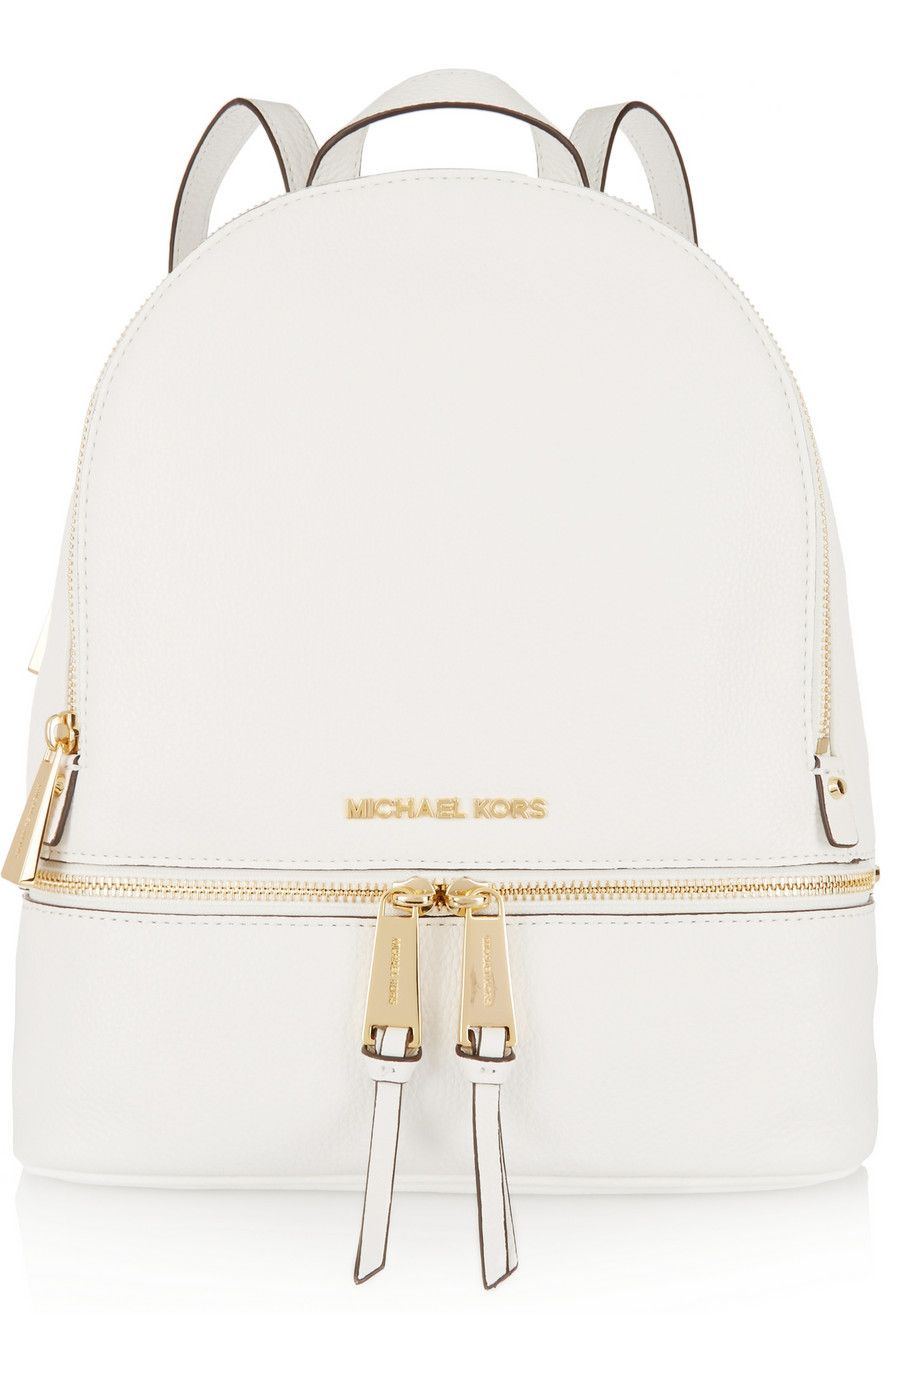 f09f72ad62fc8 White is always fascinating. A chic bag with details that make the  difference. Quality is always the main factor for those who have good taste.